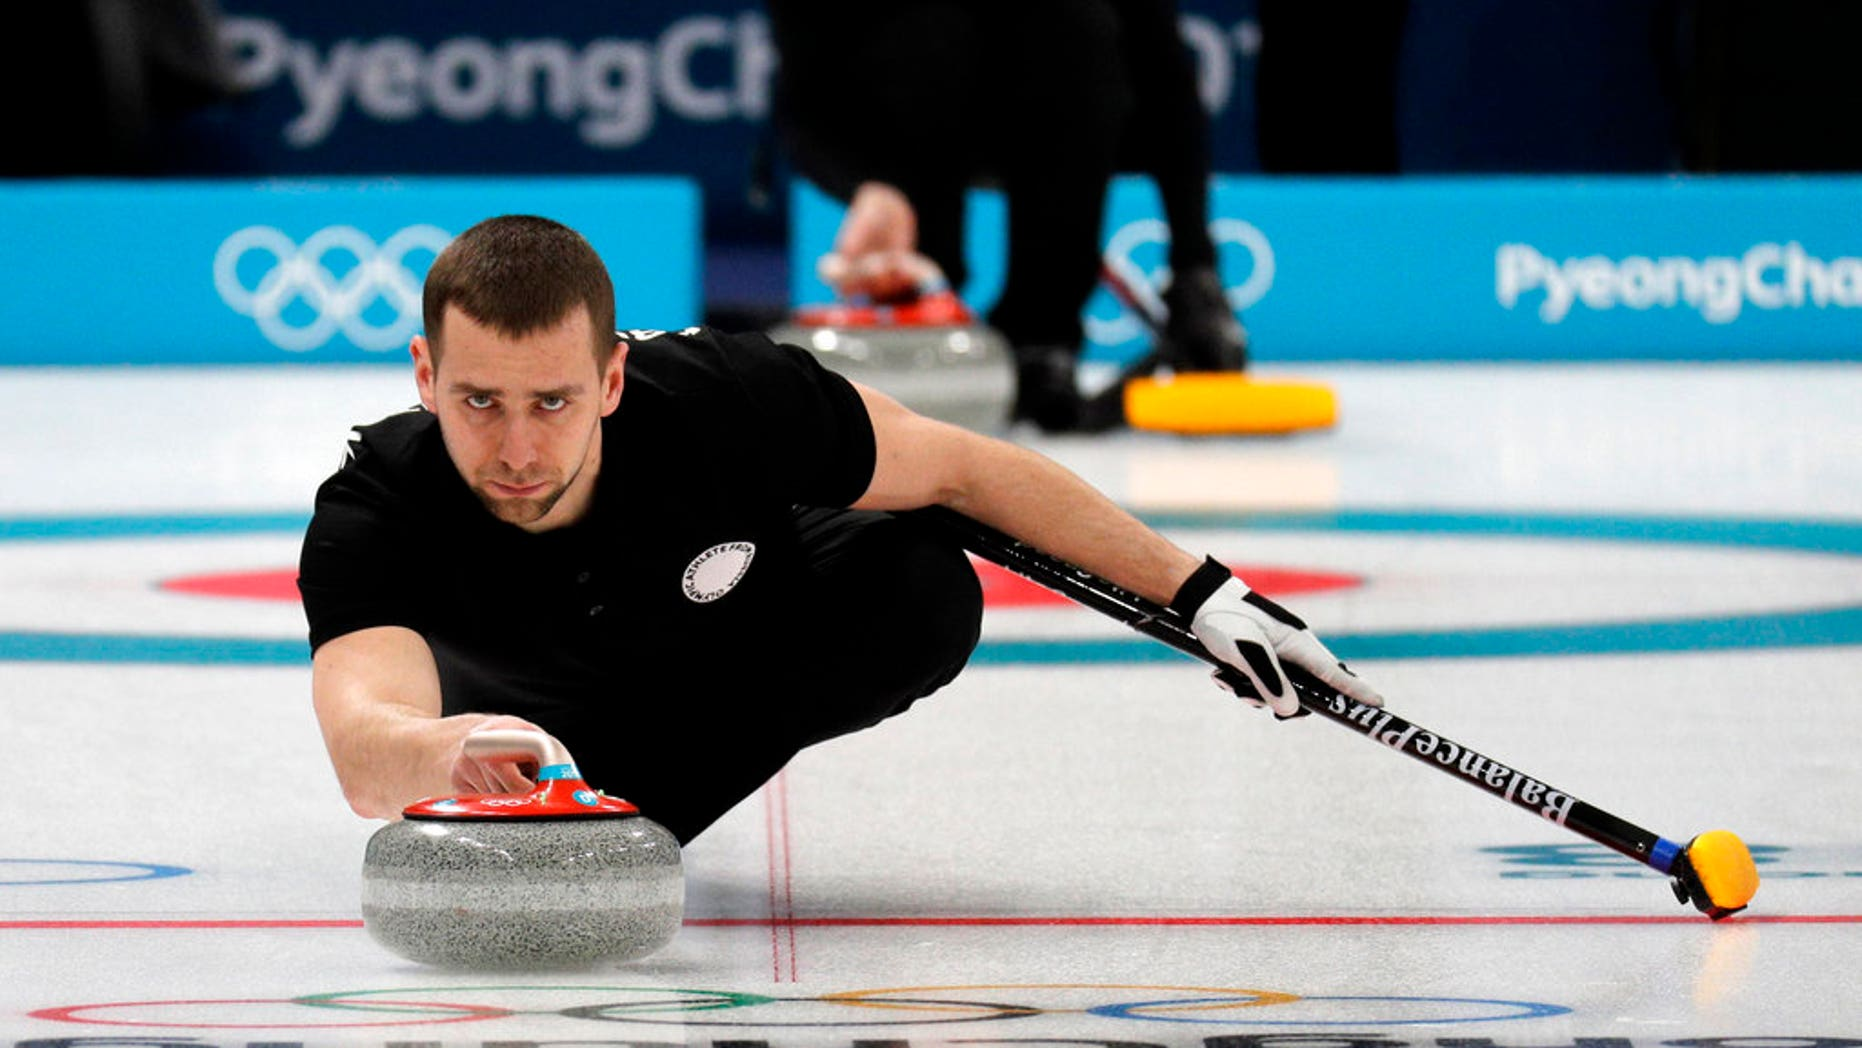 Russian curler Alexander Krushelnitsky will give back his 2018 Olympic bronze medal after he failed a doping test last week.